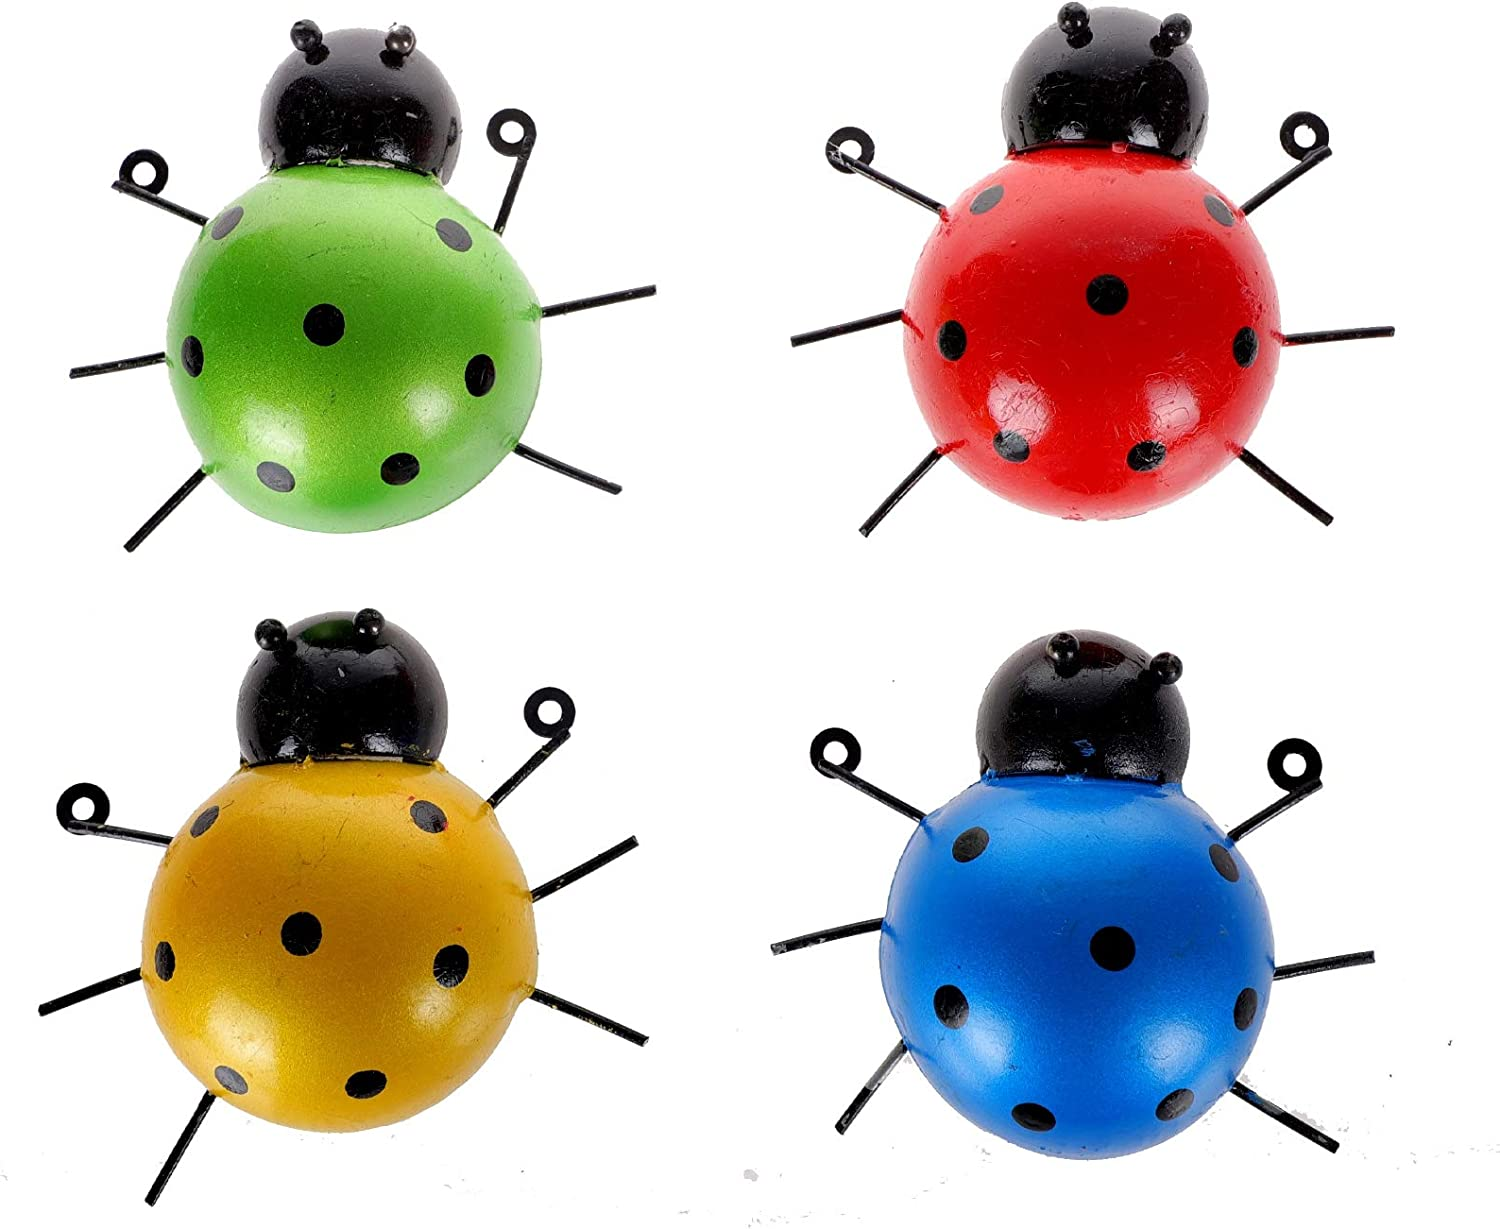 MorTime 4 Pack Metal Ladybug Garden Decorations, Colorful Decorative Hanging Ladybugs Wall Sculptures Outdoor Garden Yard Lawn Decor